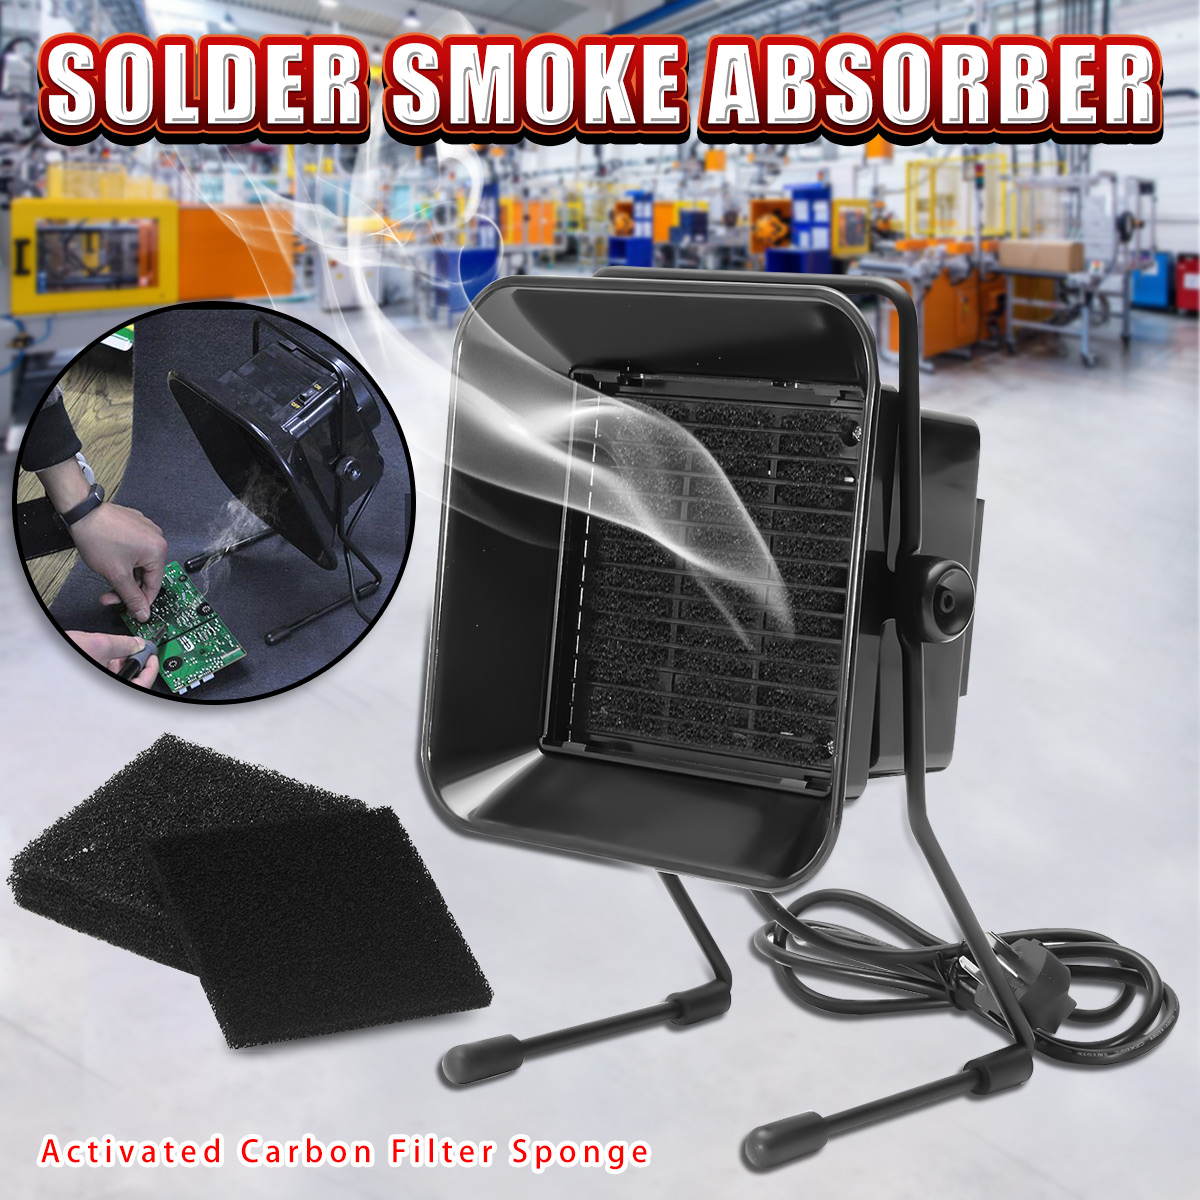 220V 16W Portable Solder Smoke Absorber ESD Fume Extractor for Soldering Iron Work Soldering Smoking Fan with Filter Sponge soldering iron exhaust fan bga soldering station repair tools solder smoke exhauster remover fume extractor with led lighting